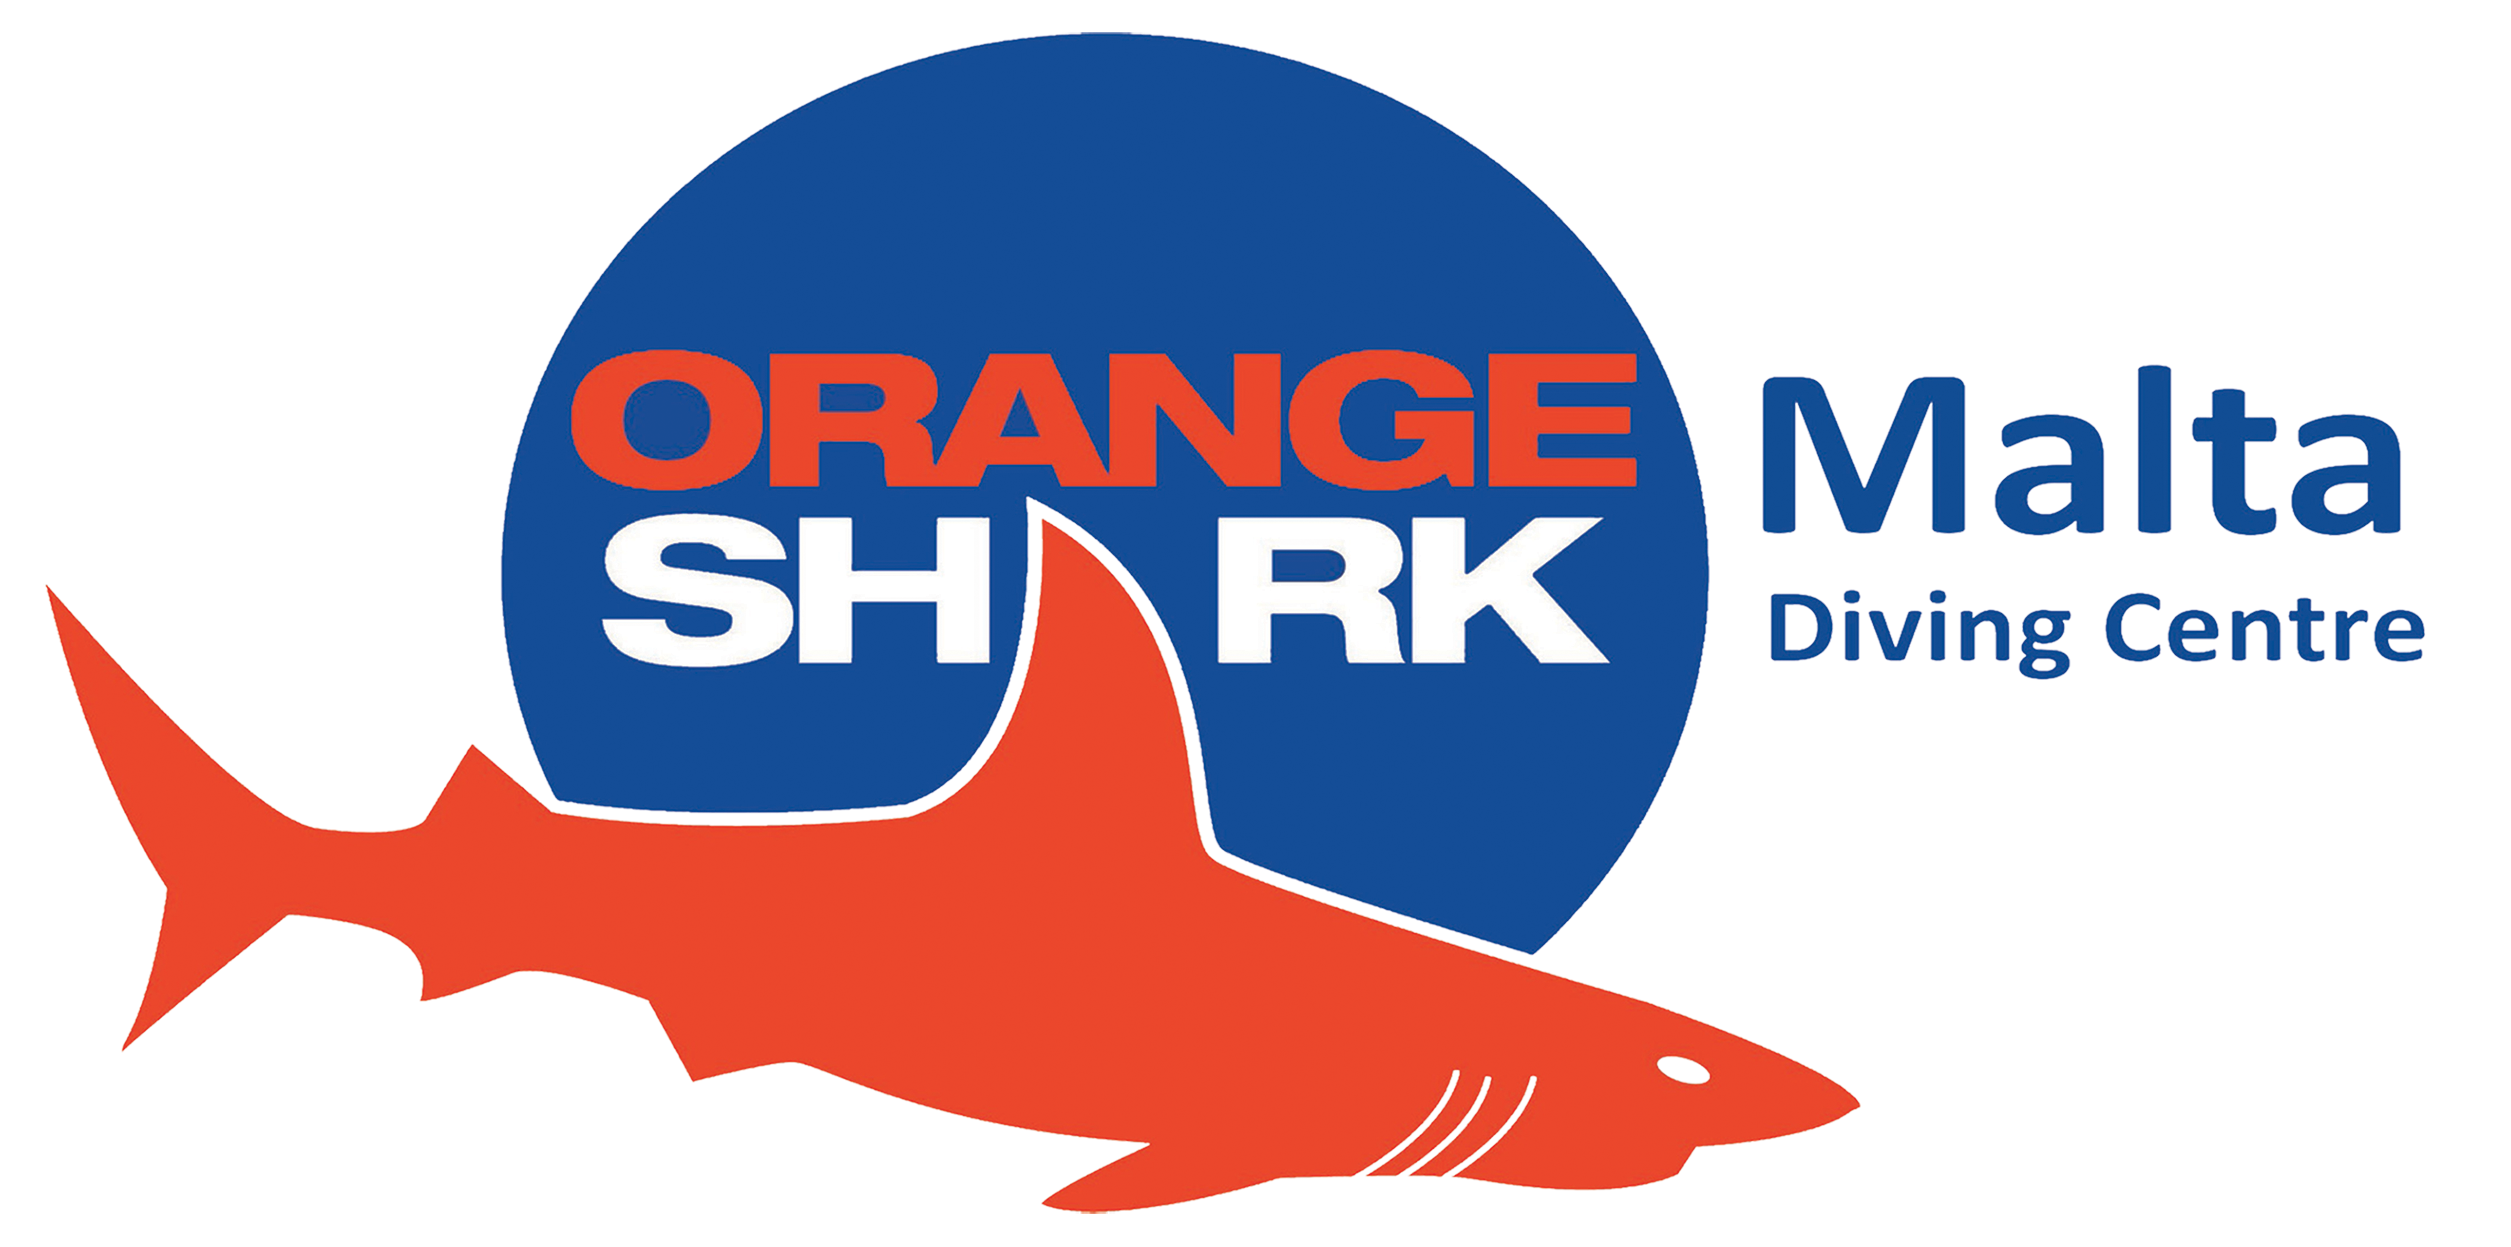 Diving a Malta: Orange Shark